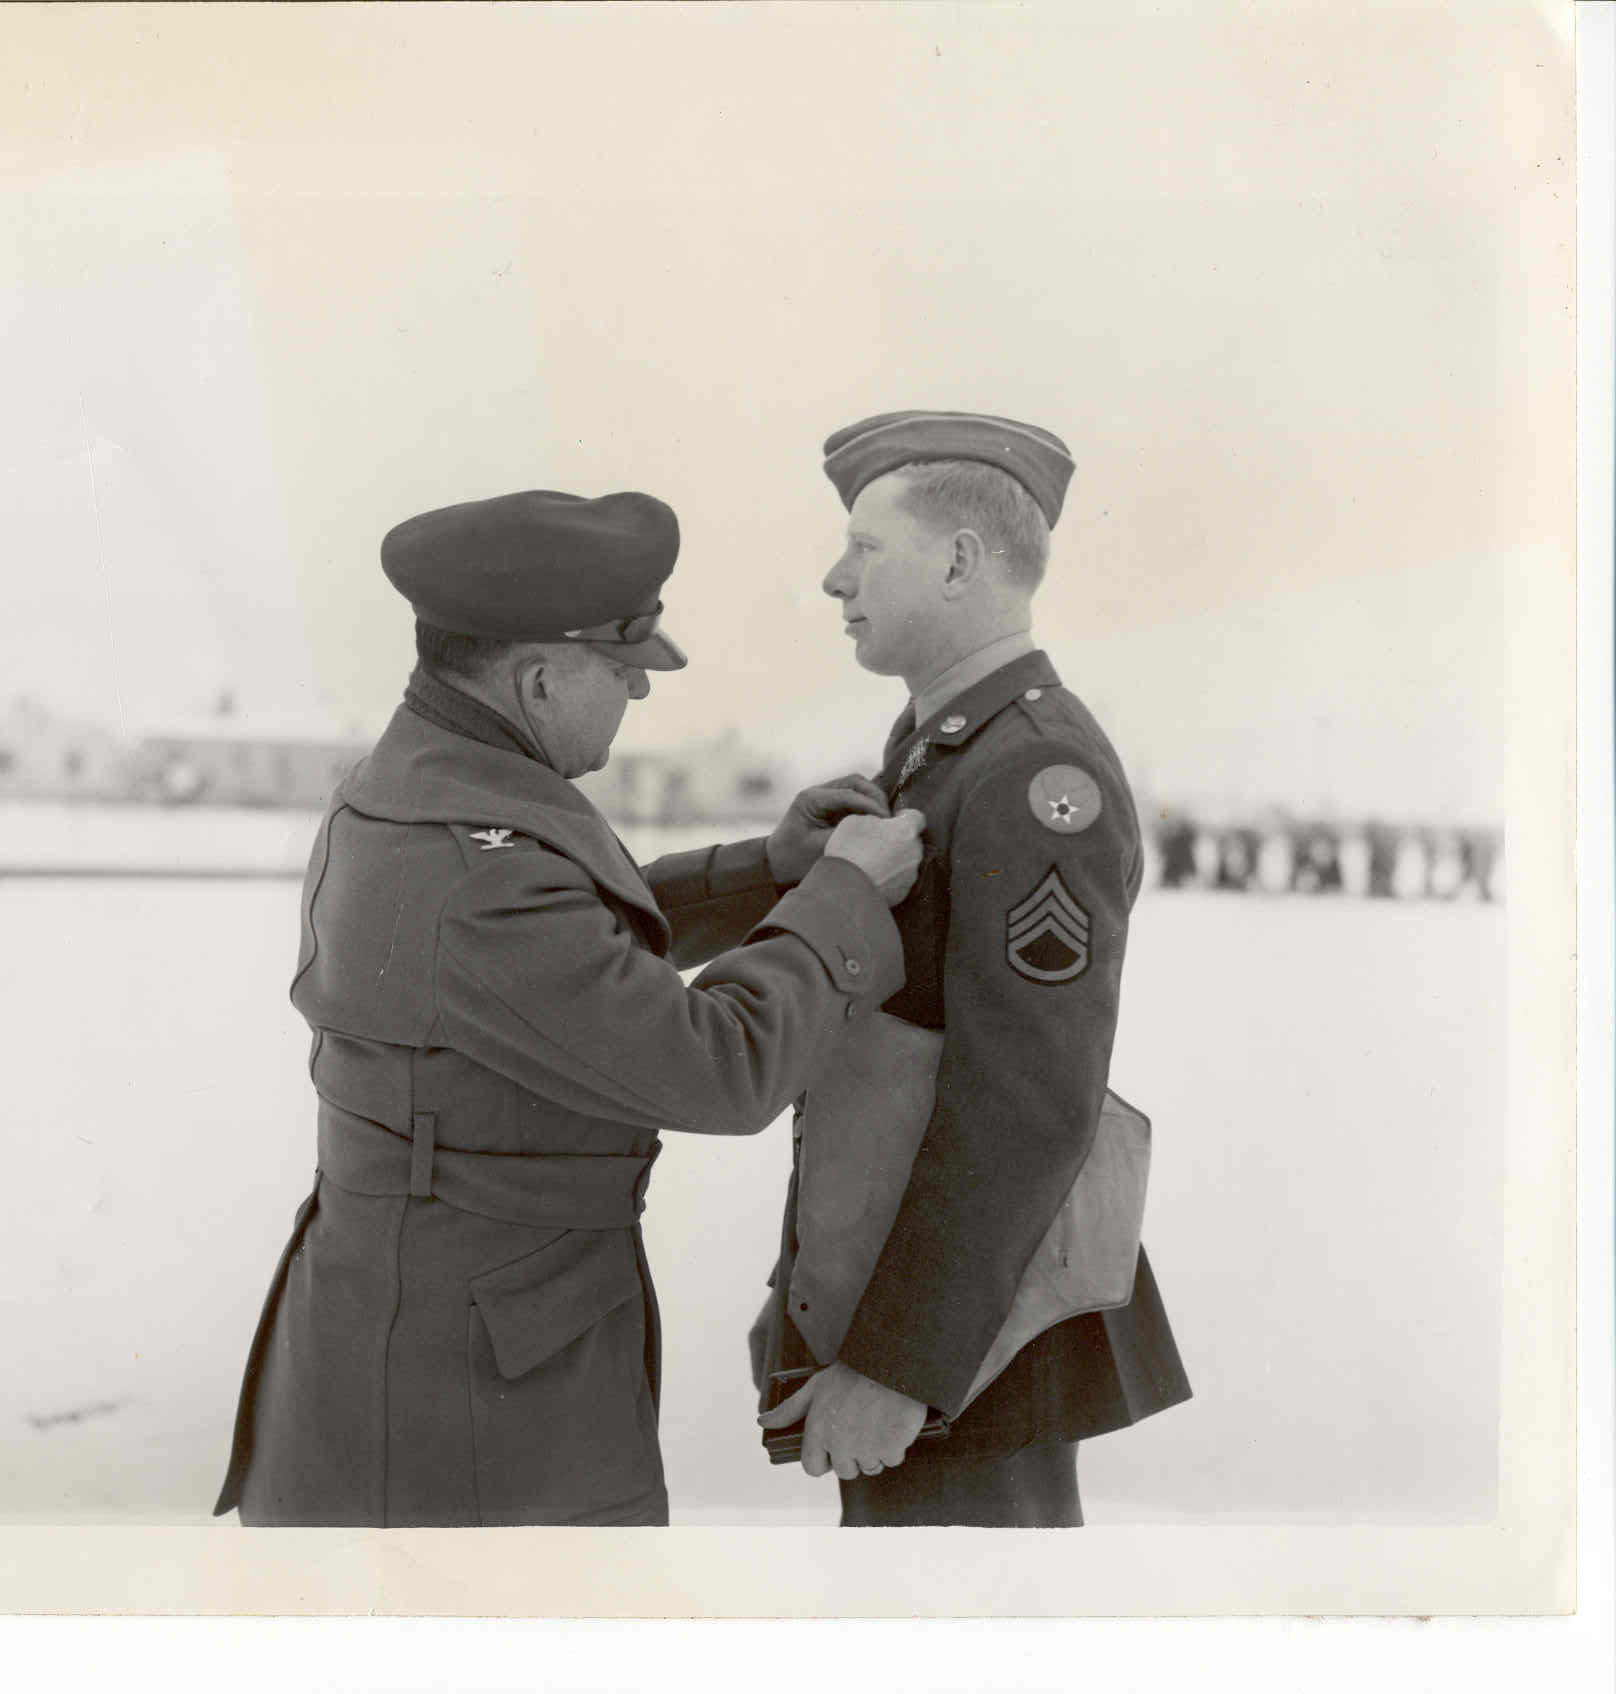 """Everett (Pete) Stults, a gunner in World War II, receiving a medal.  Photo provided to Orchestra of Southern Utah by Nina Hansen, daughter-in-law of Stults. Nina Hansen is principal cellist with the Orchestra of Southern Utah and perform """"Kol Nidrei"""" by Max Bruch at the performance previewed in the attached report. 